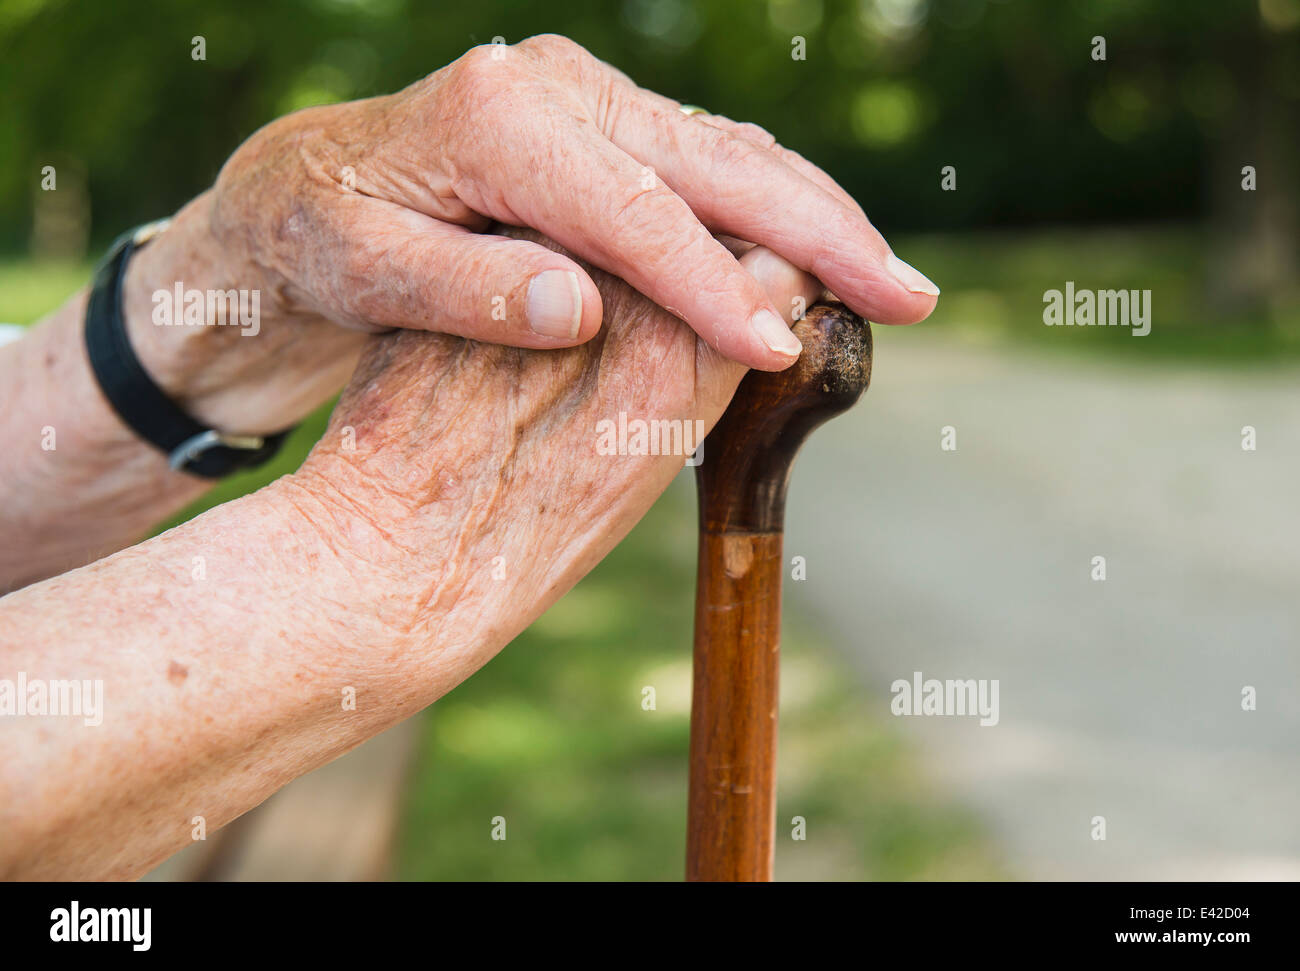 Senior woman's hands, holding walking stick - Stock Image